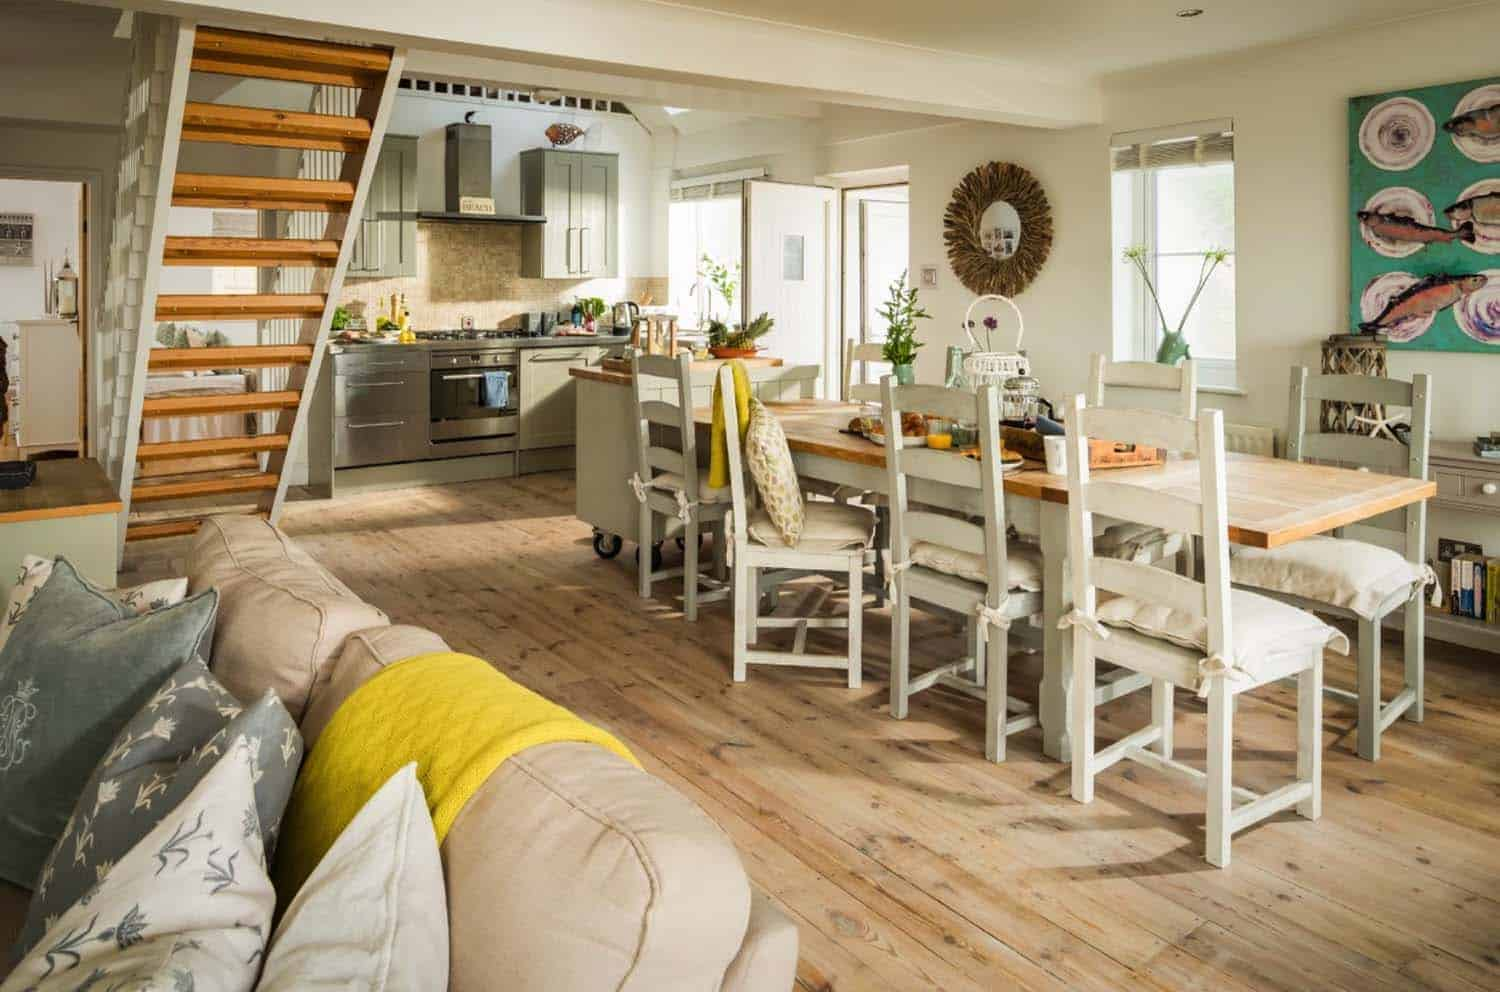 Barefoot Beach House-East Sussex-03-1 Kindesign